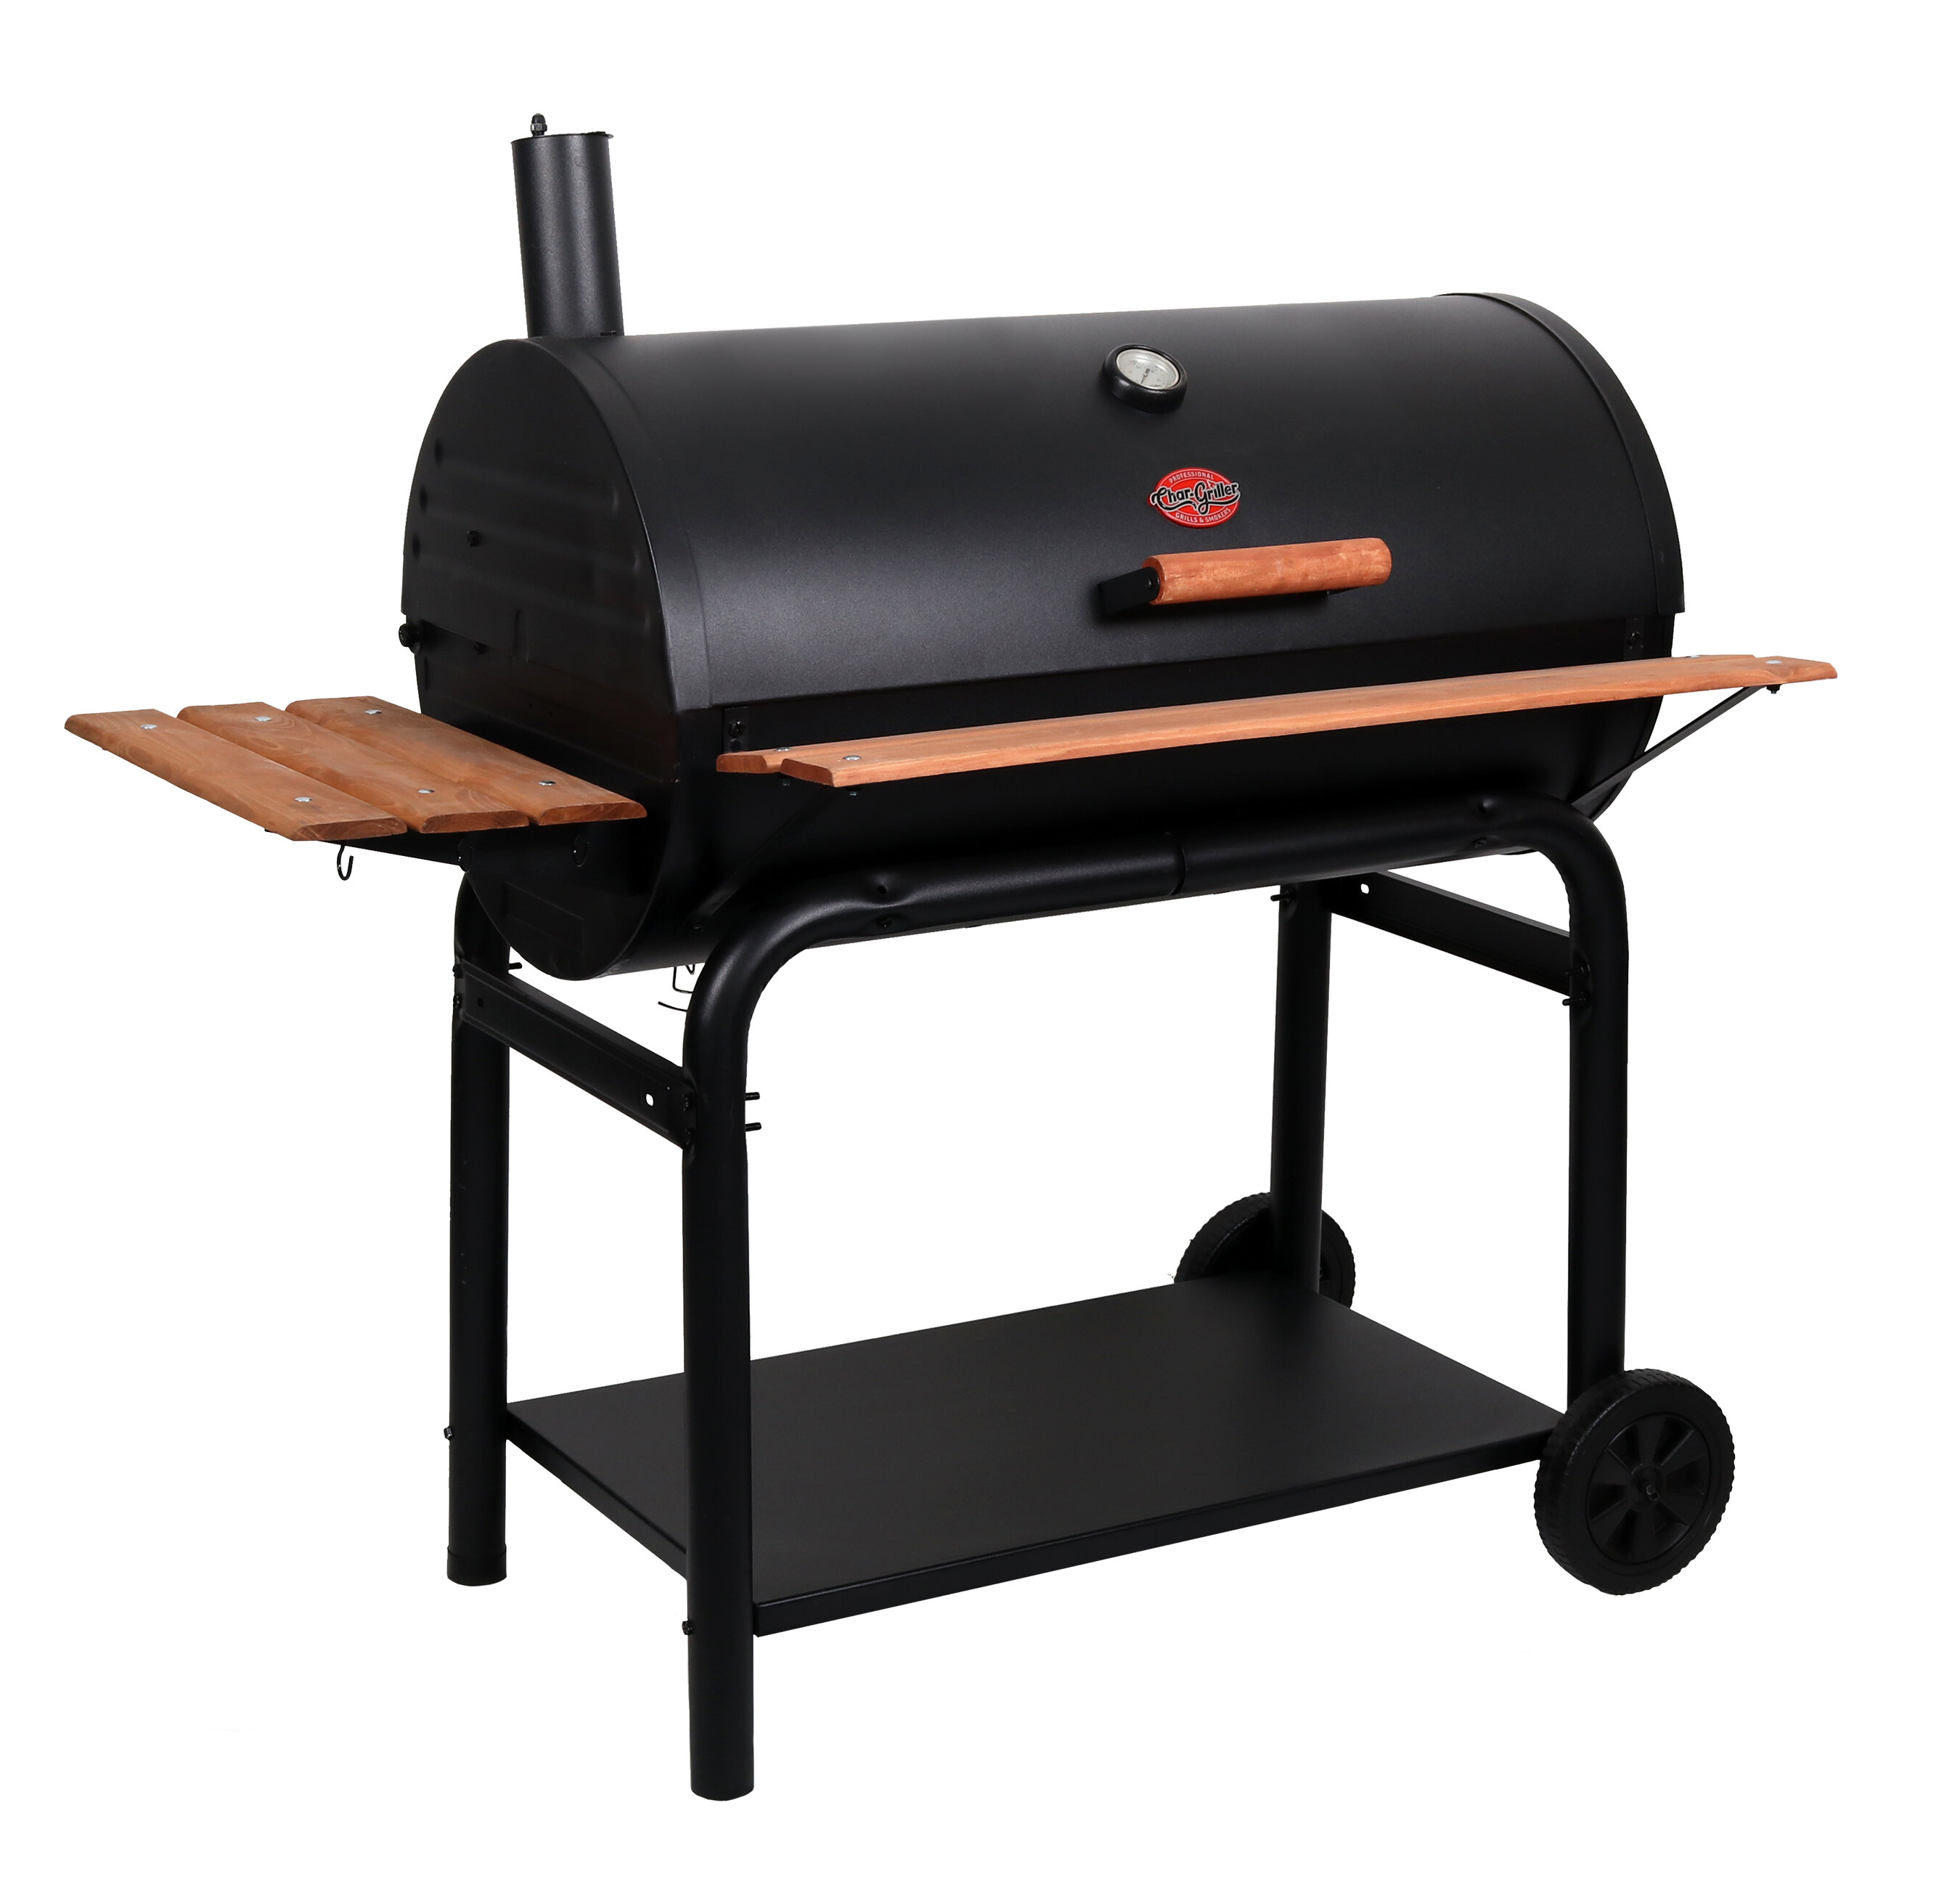 Outlaw Barrel Charcoal Grill With Side Shelves